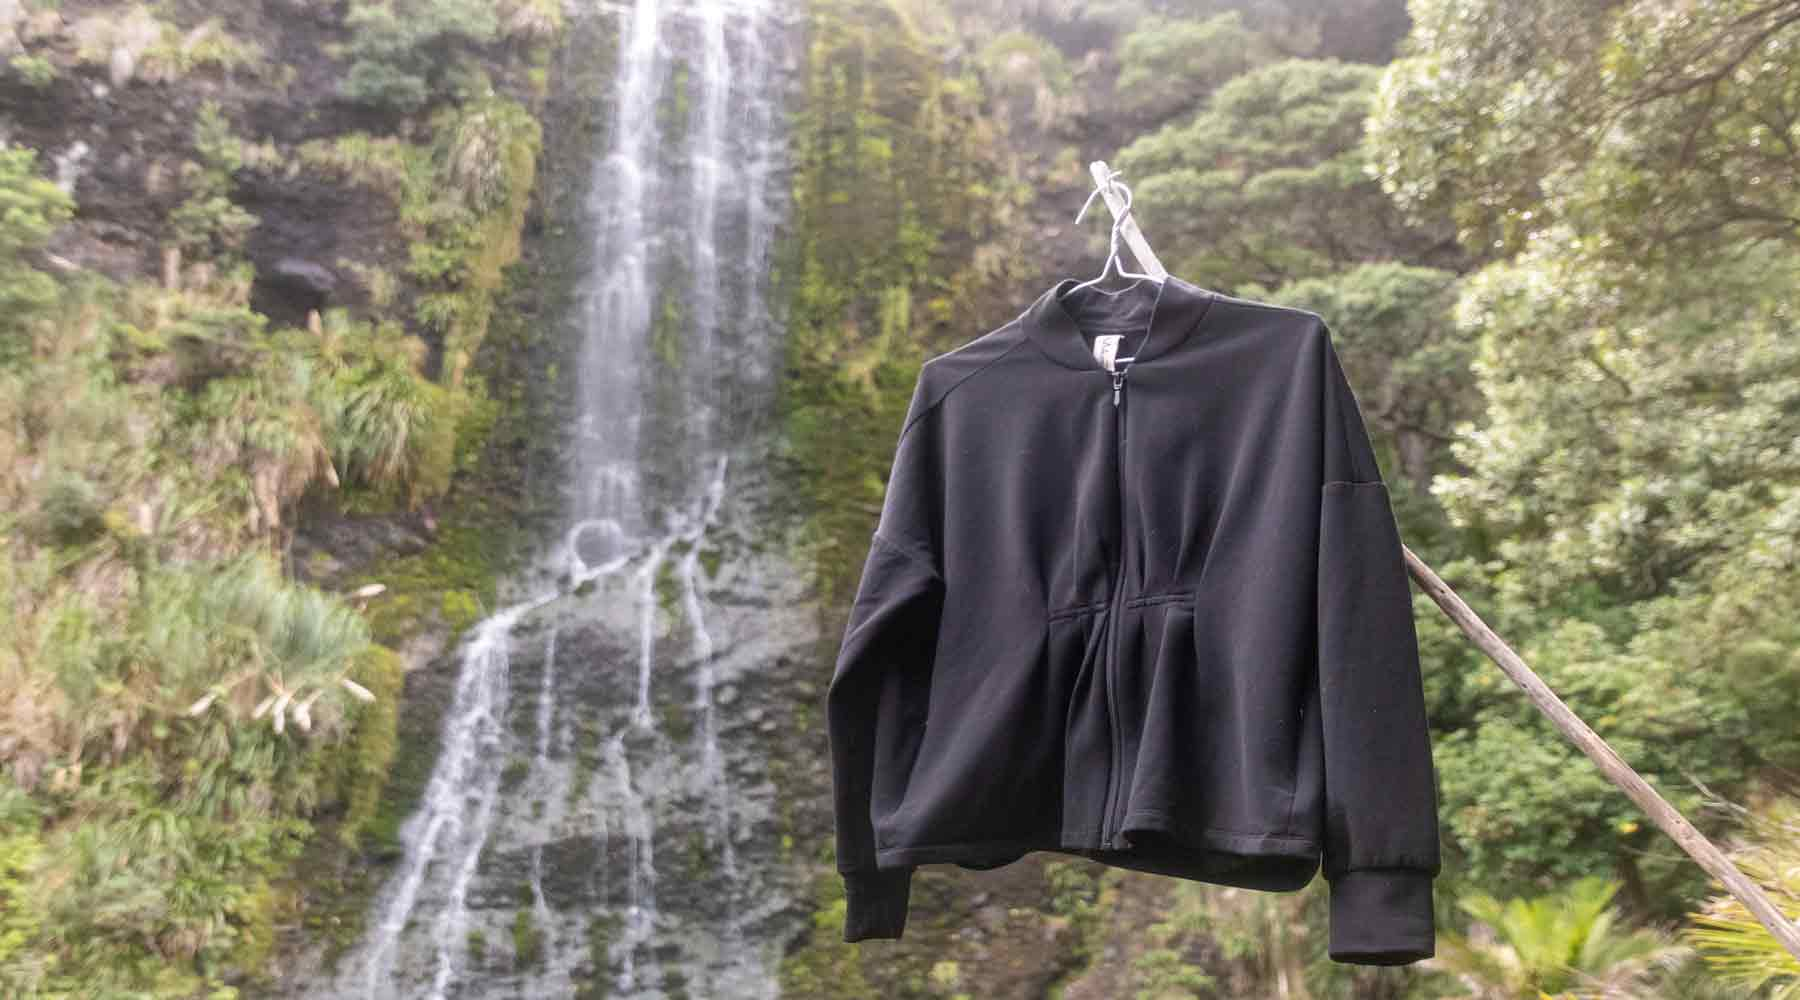 Asmuss Pleated Zip Through Sweater in front of the Karekare Falls New Zealand